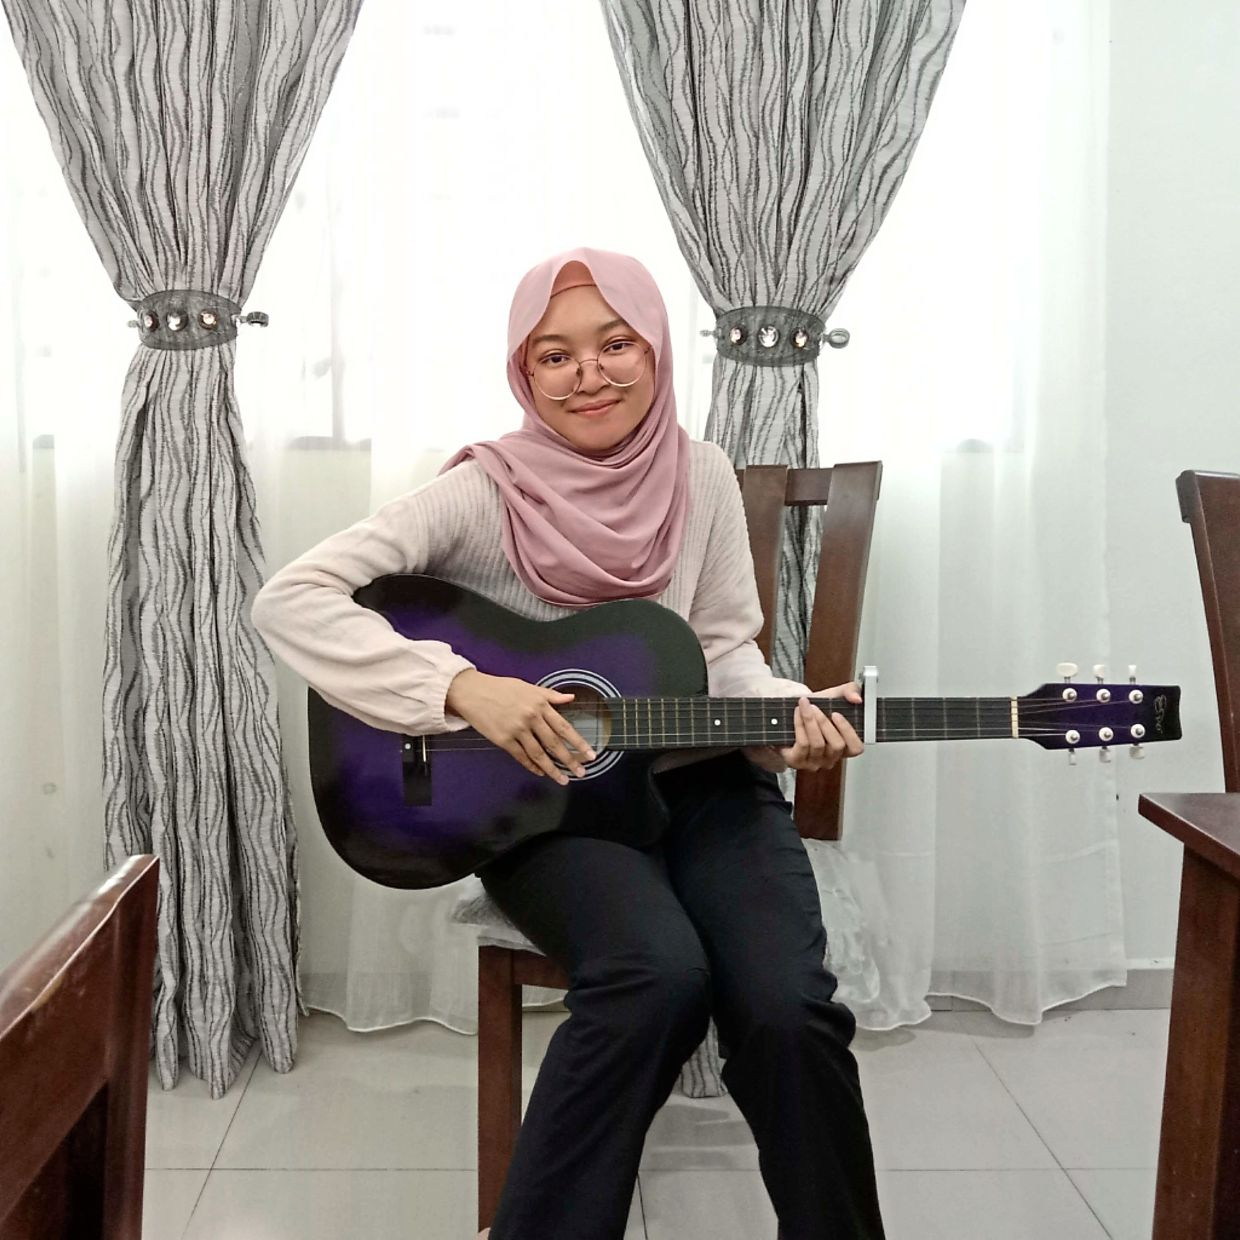 Strumming up harmony: The soothing effects of music helps carry Nur Alia through her solitude.